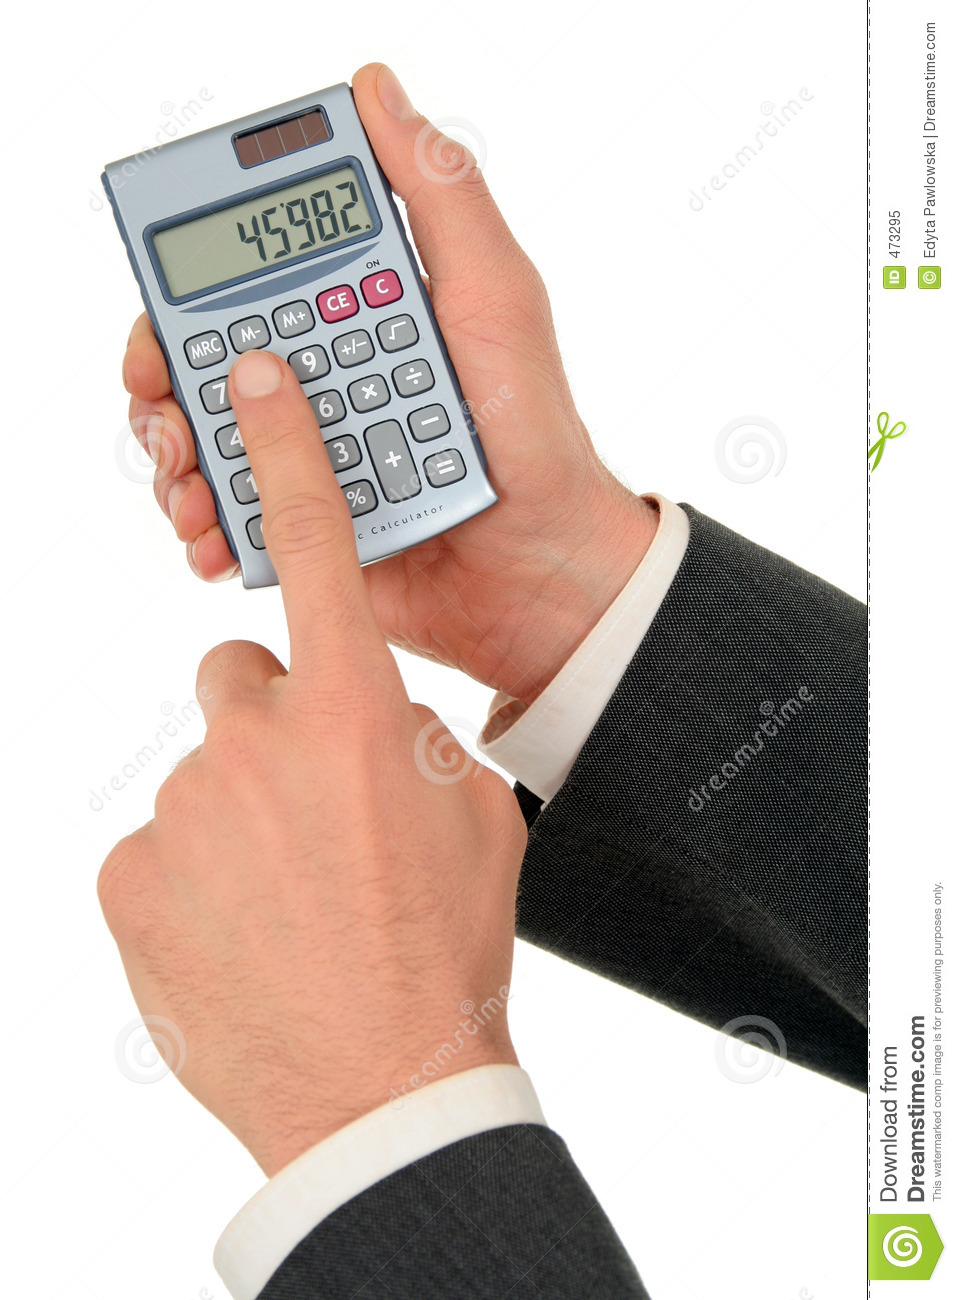 Download Businessman's Hands Holding A Calculator Stock Image - Image of office, education: 473295